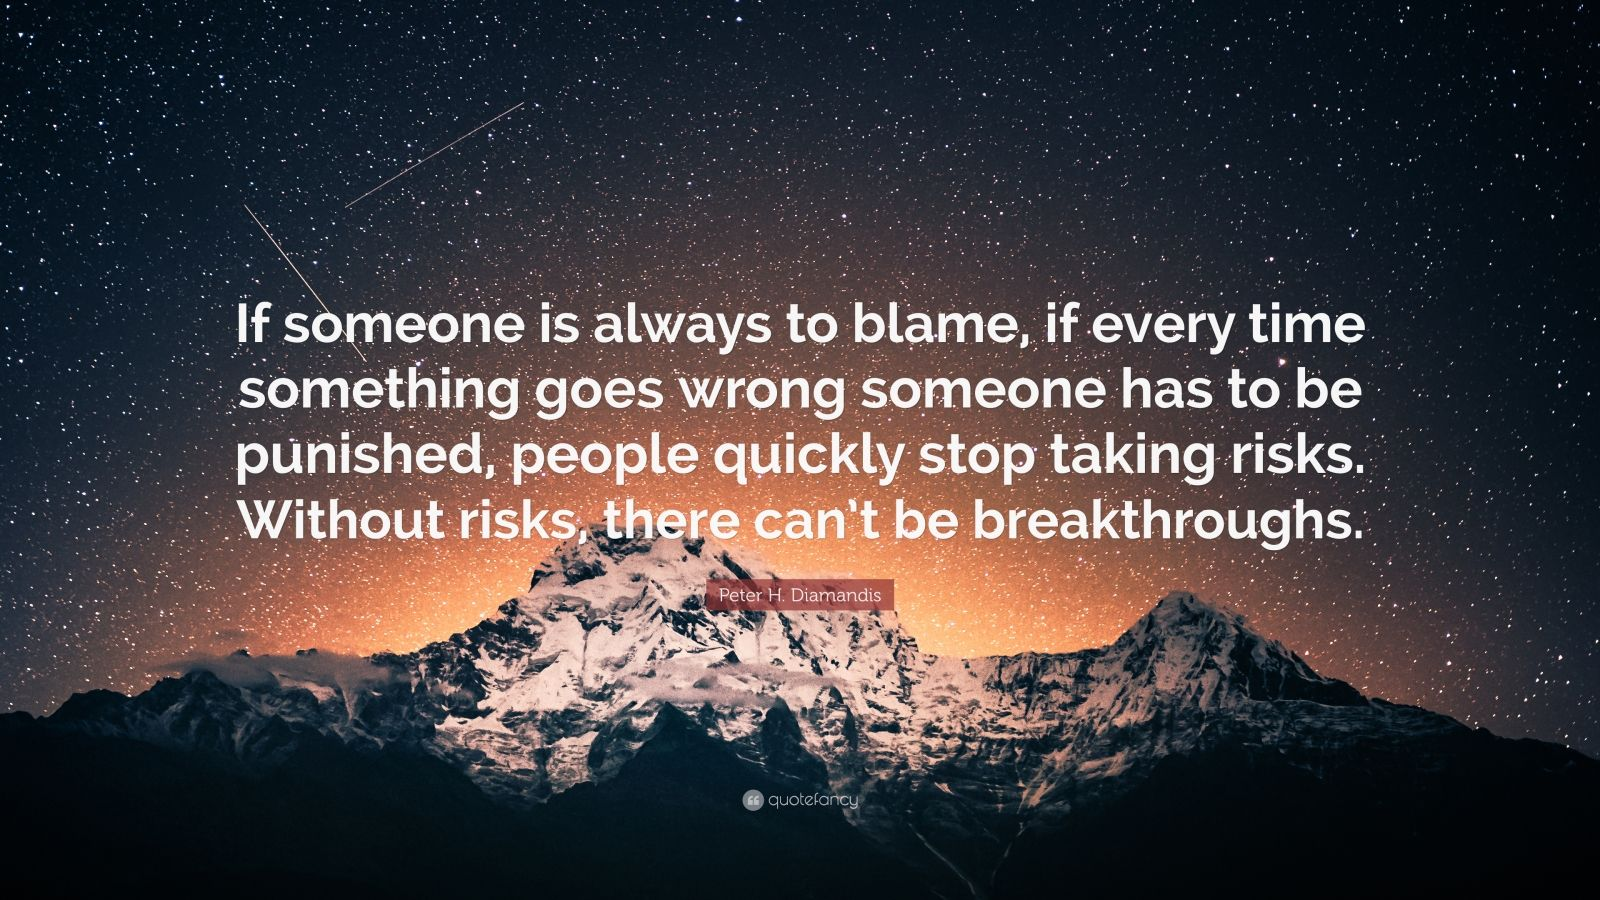 """Peter H. Diamandis Quote: """"If someone is always to blame, if every time something goes wrong someone has to be punished, people quickly stop taking risks. Without risks, there can't be breakthroughs."""""""